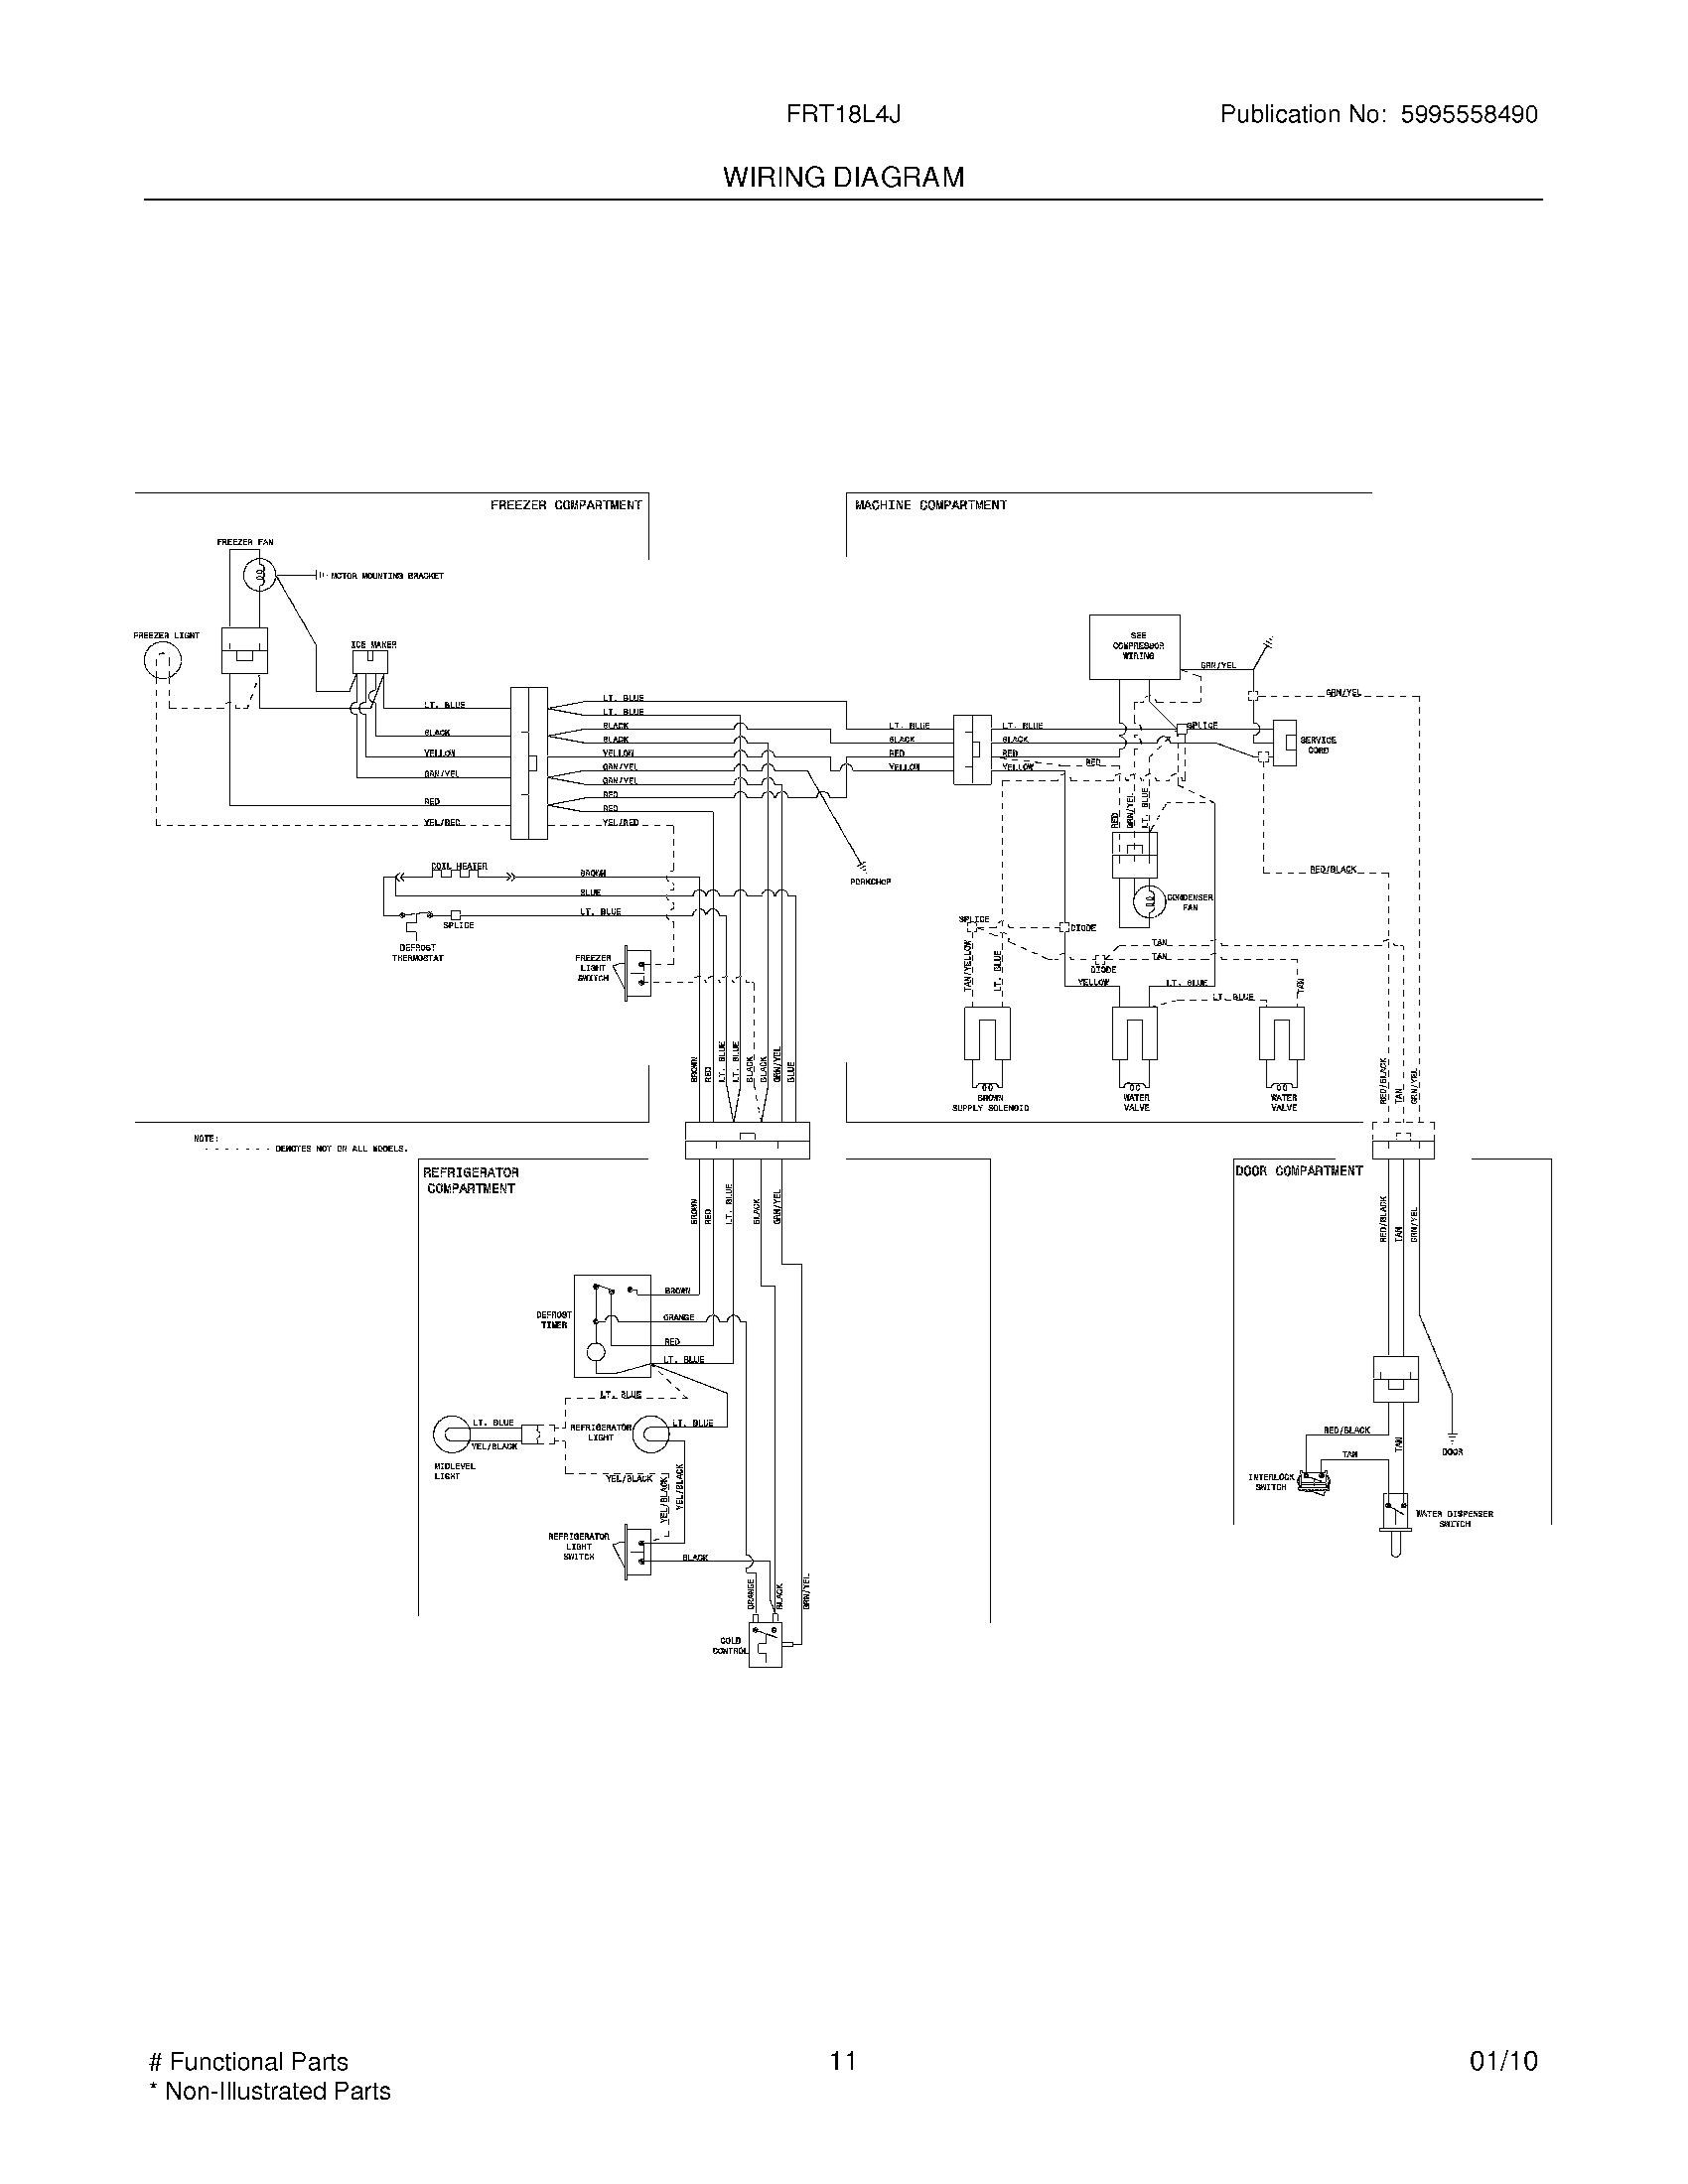 Wiring Electrolux Diagram Fac082m7a1 Canister Vacuum Onida Washing Machine Fridge Freezer Schematics Diagrams